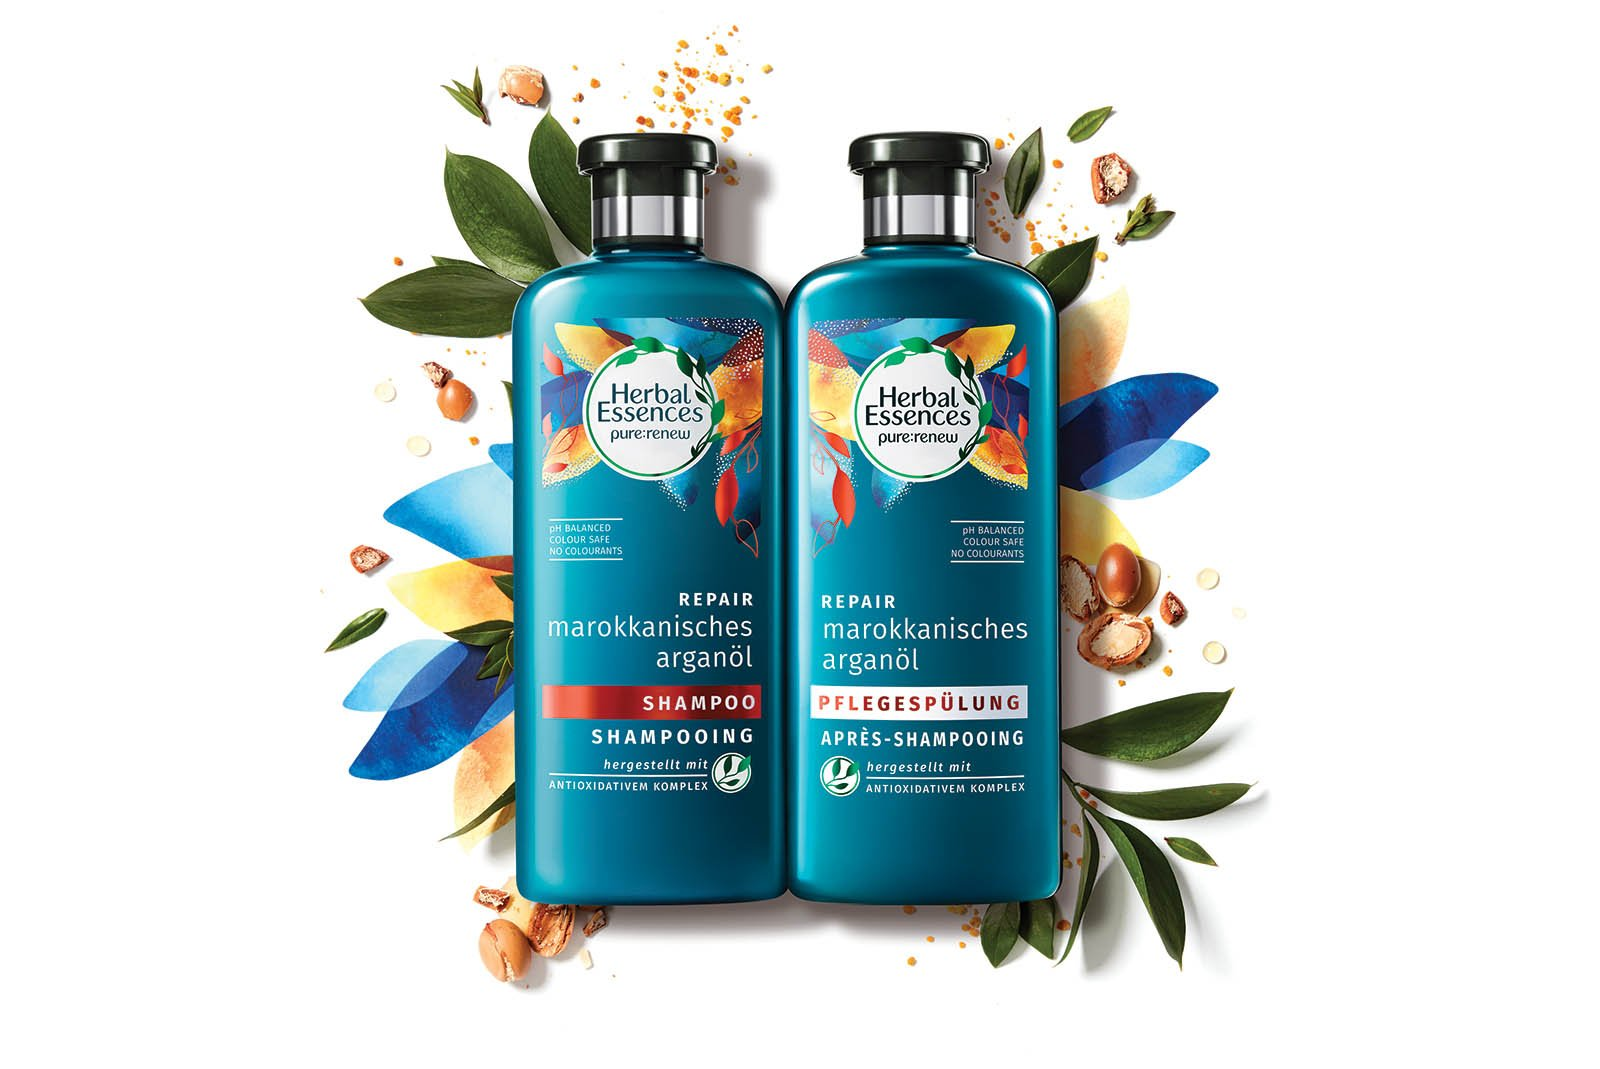 Herbal Essences pure renew